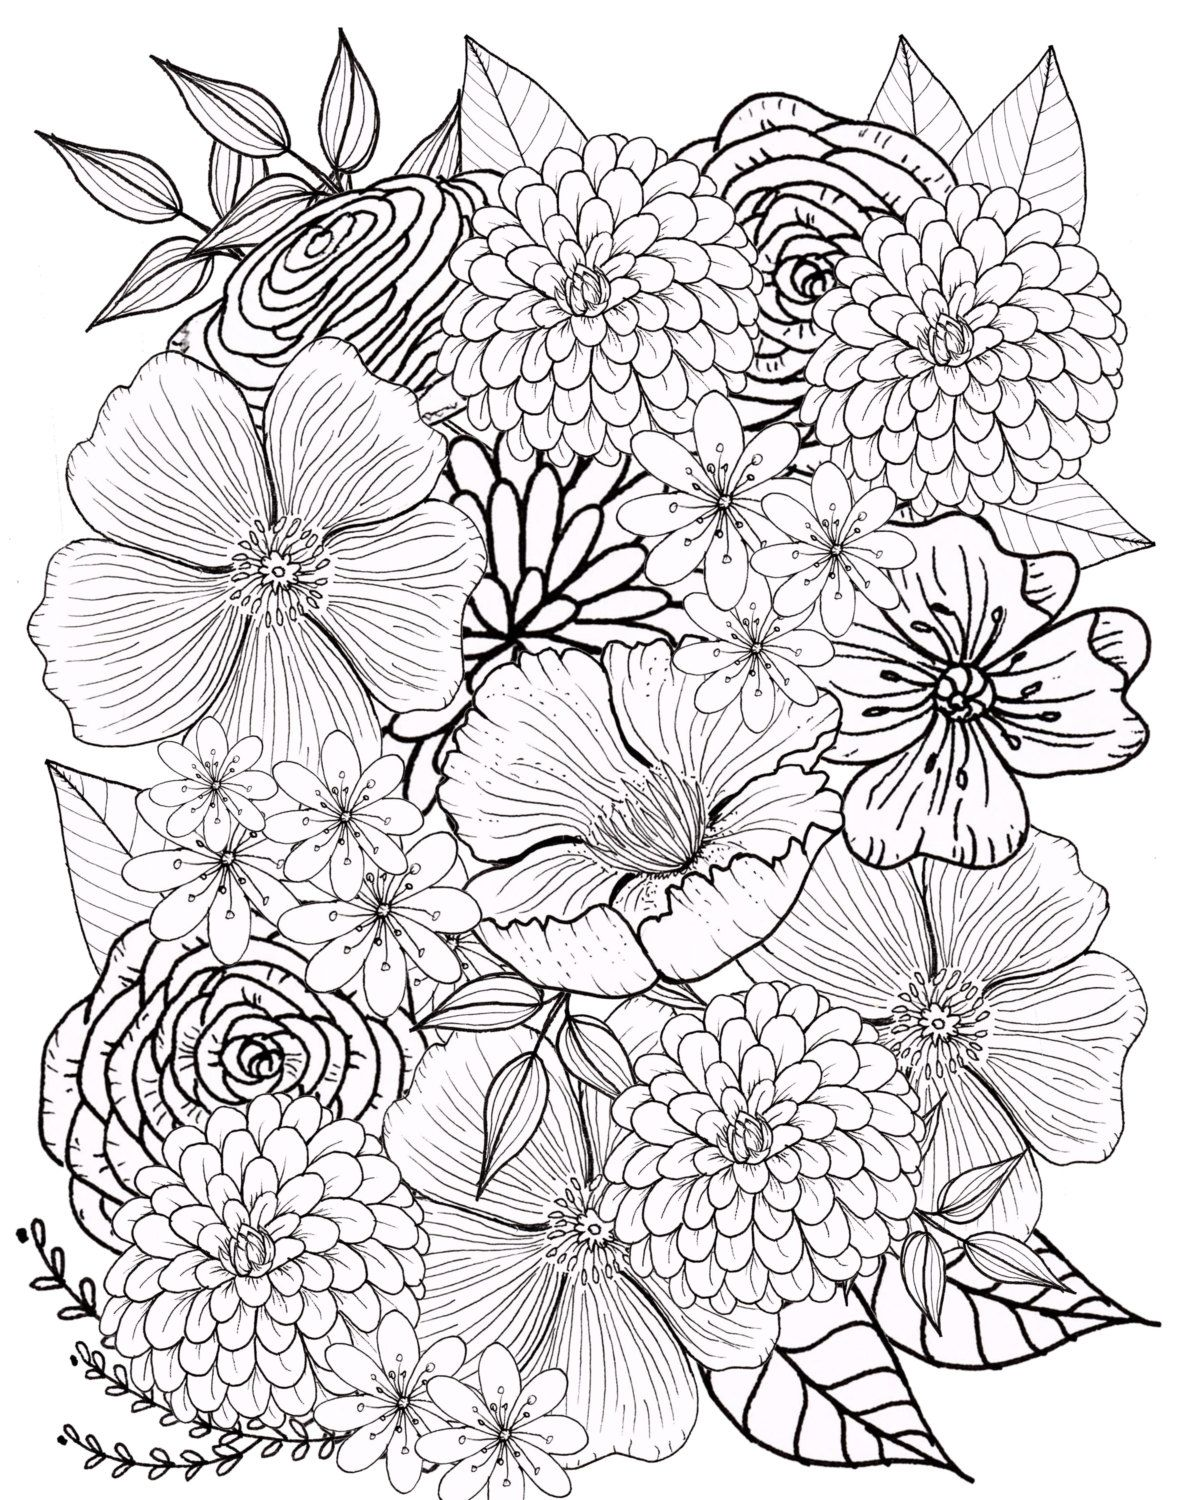 Flower coloring page floral coloring page adult coloring coloring